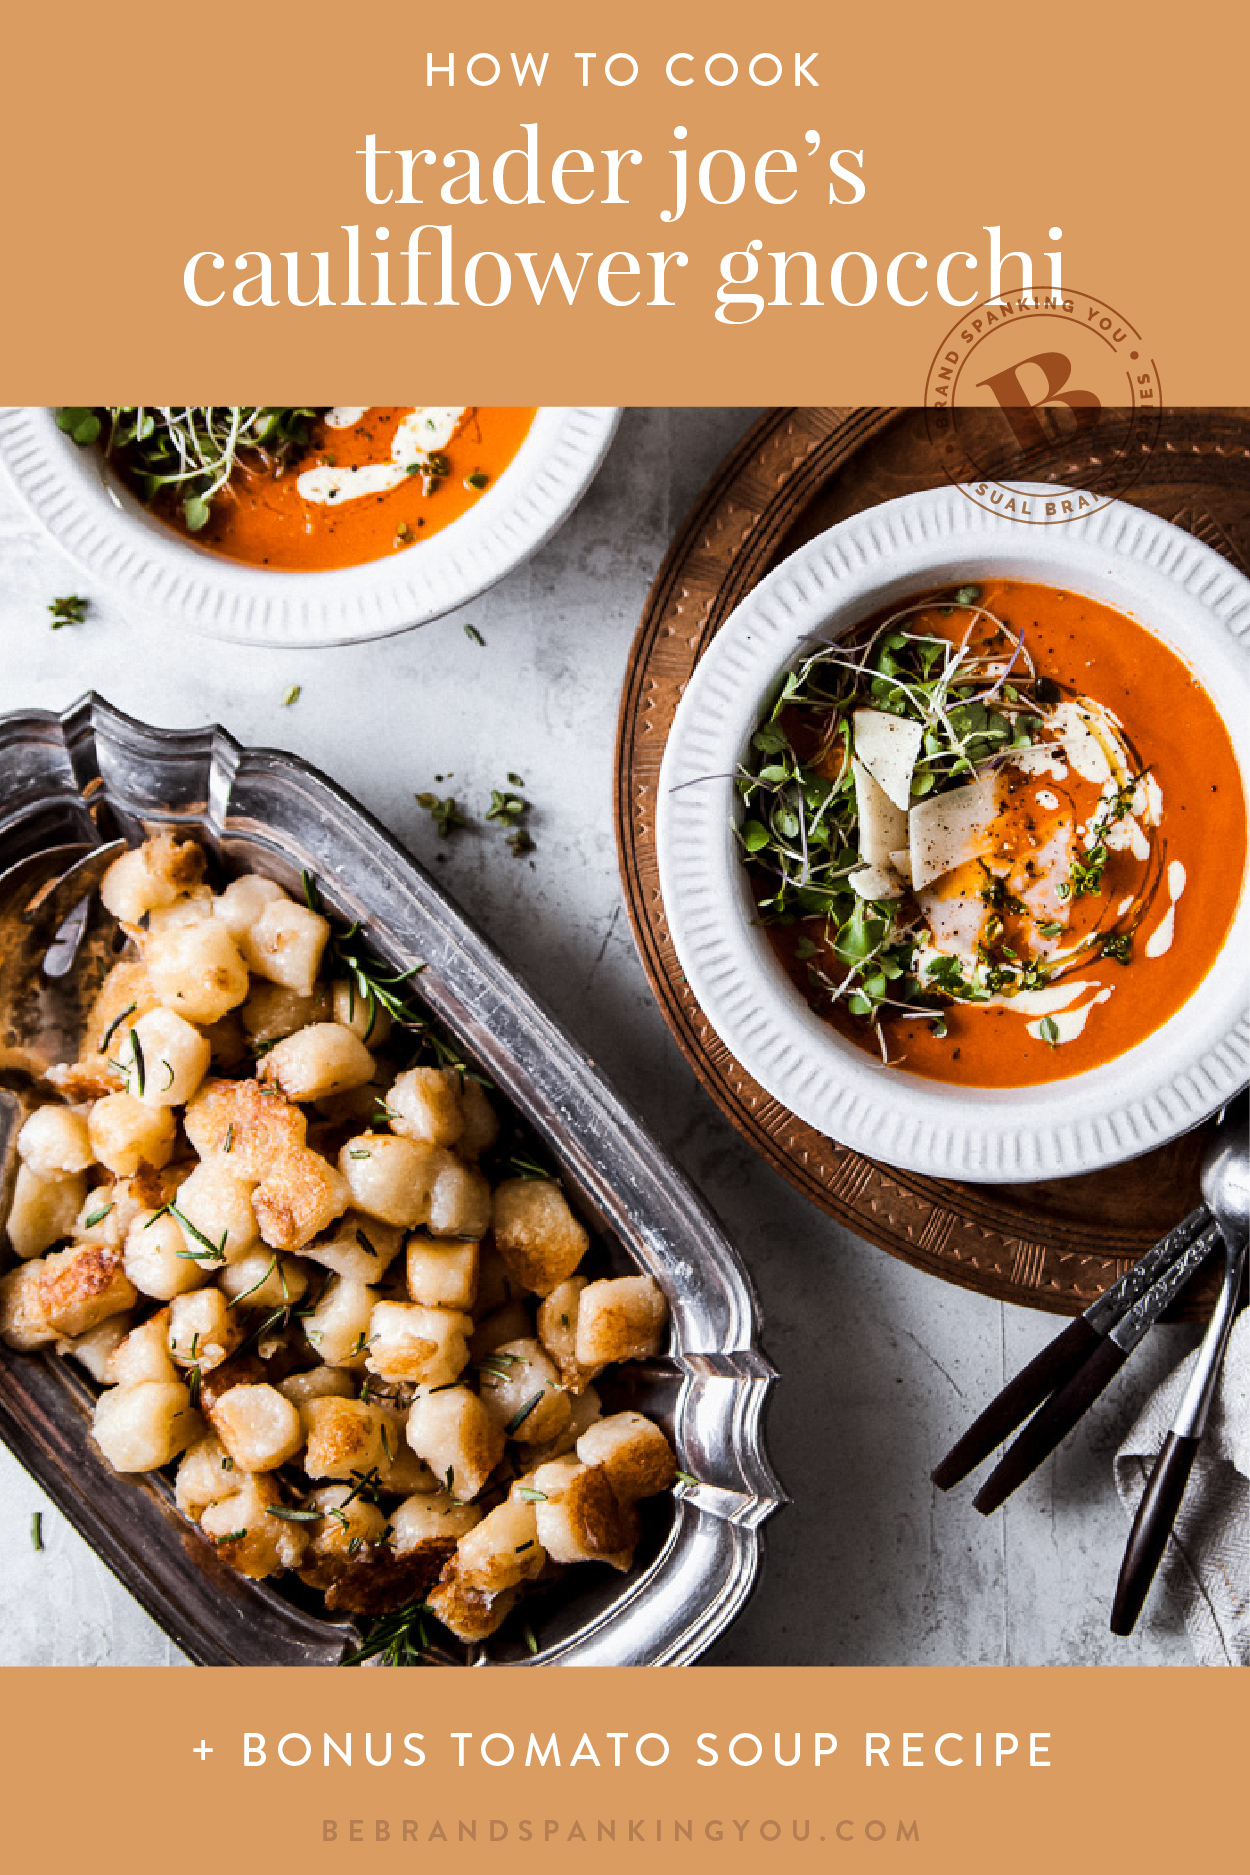 Turns out, the secret to cooking Trader Joe's Cauliflower Gnocchi is to ignore the instructions. Pair it with this easy tomato soup and you've got a weeknight meal in less than 30 minutes.